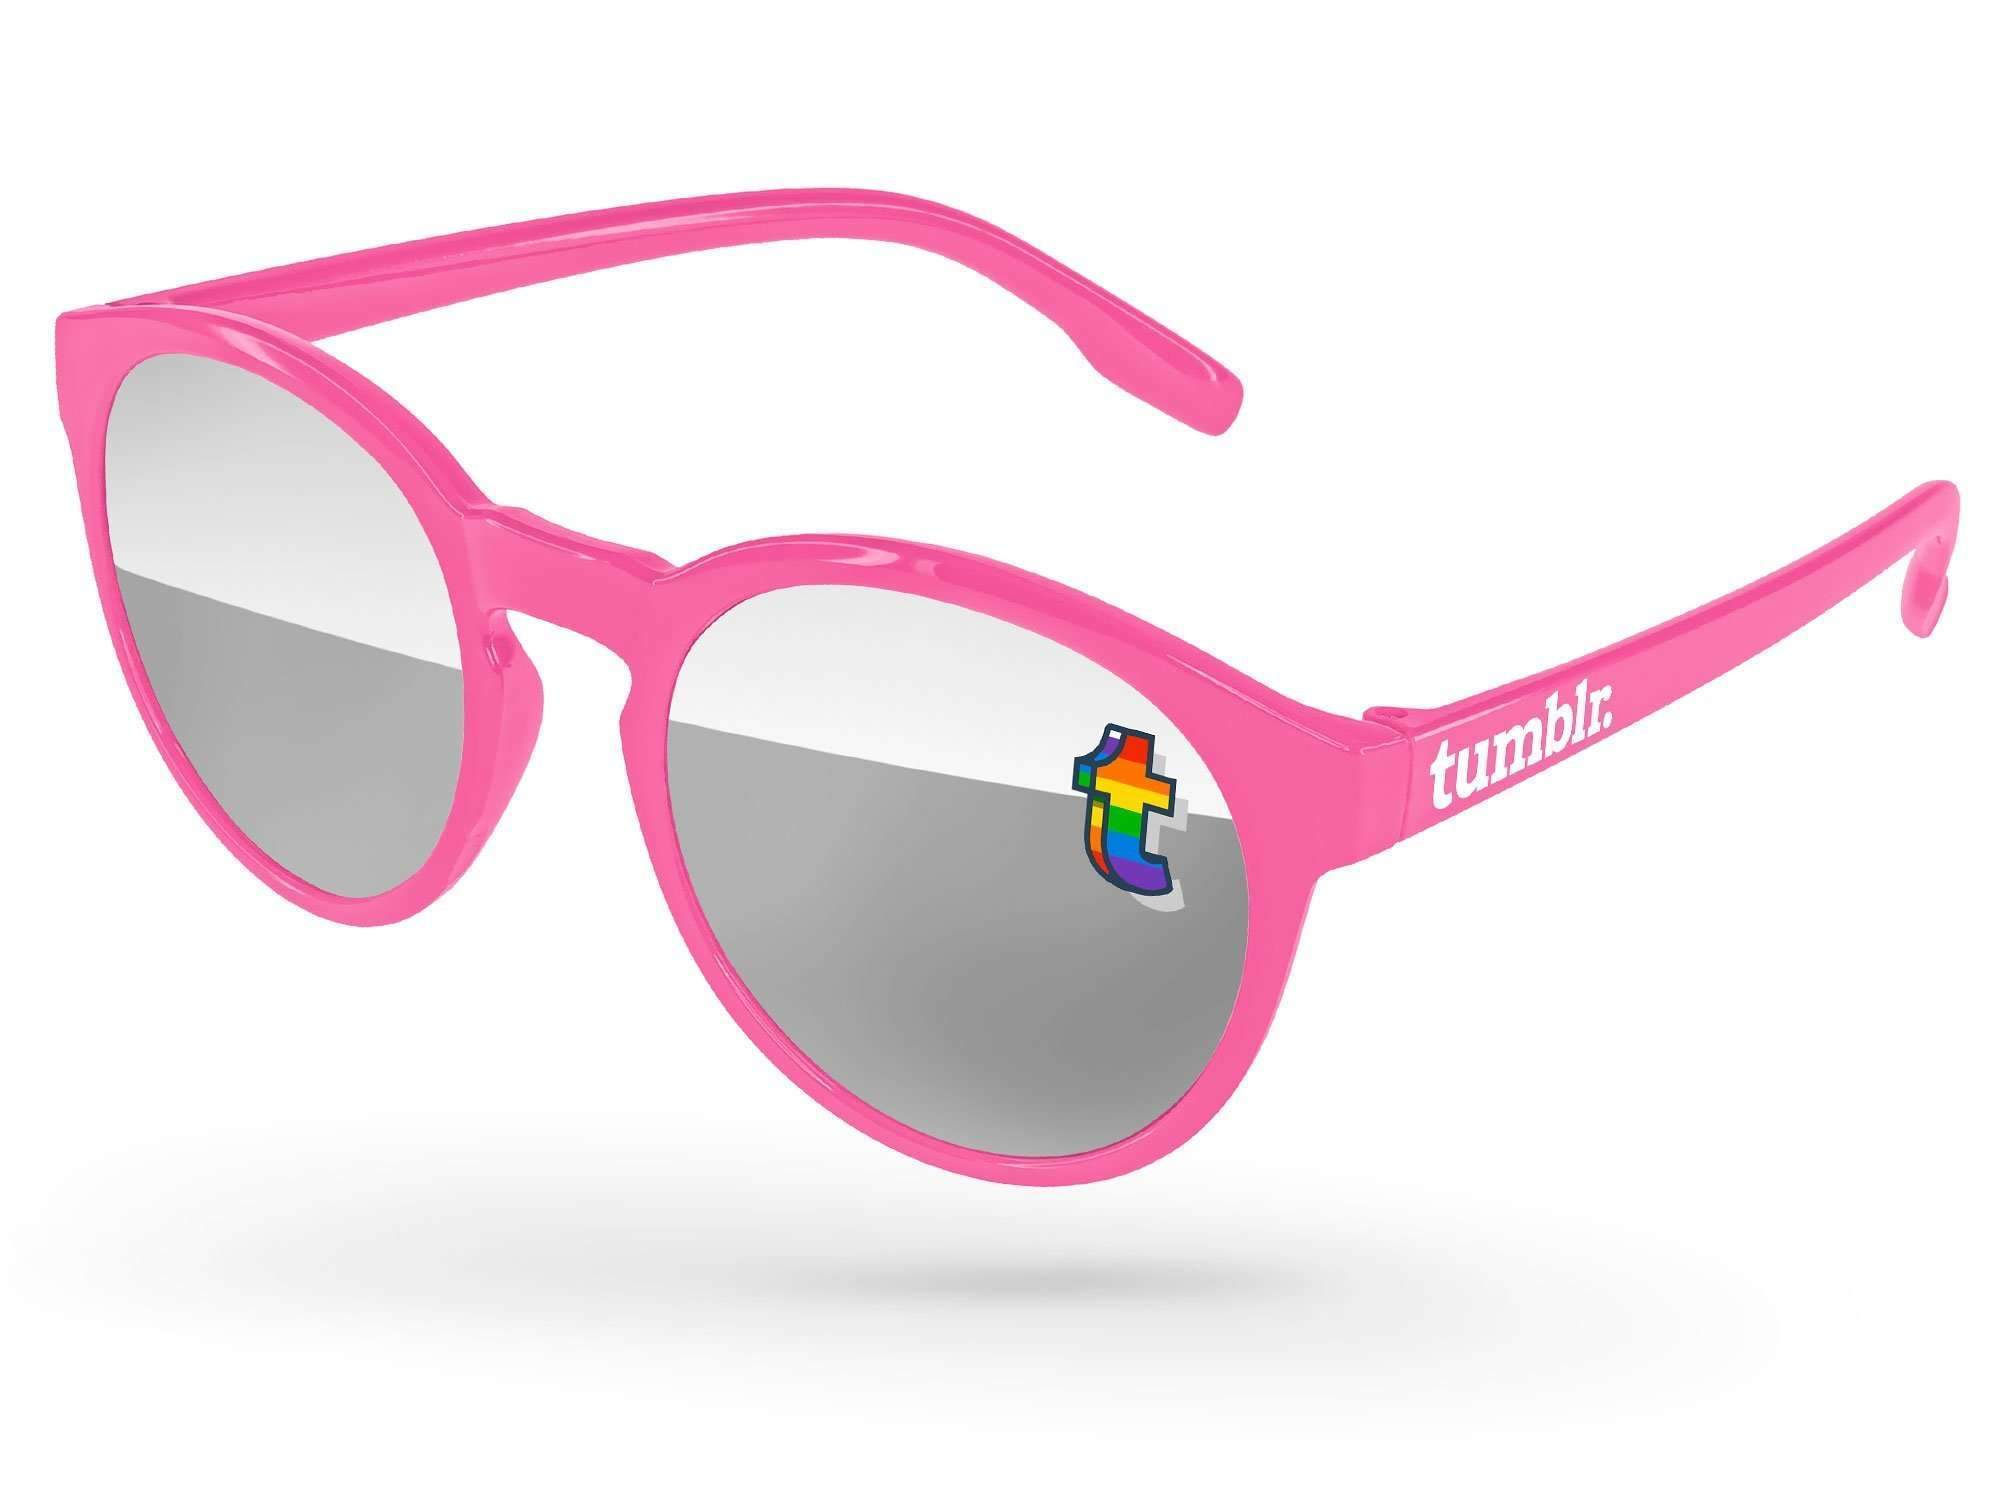 Pride Vicky Mirror Promotional Sunglasses w/ full-color lens imprint & 1-color temple imprint